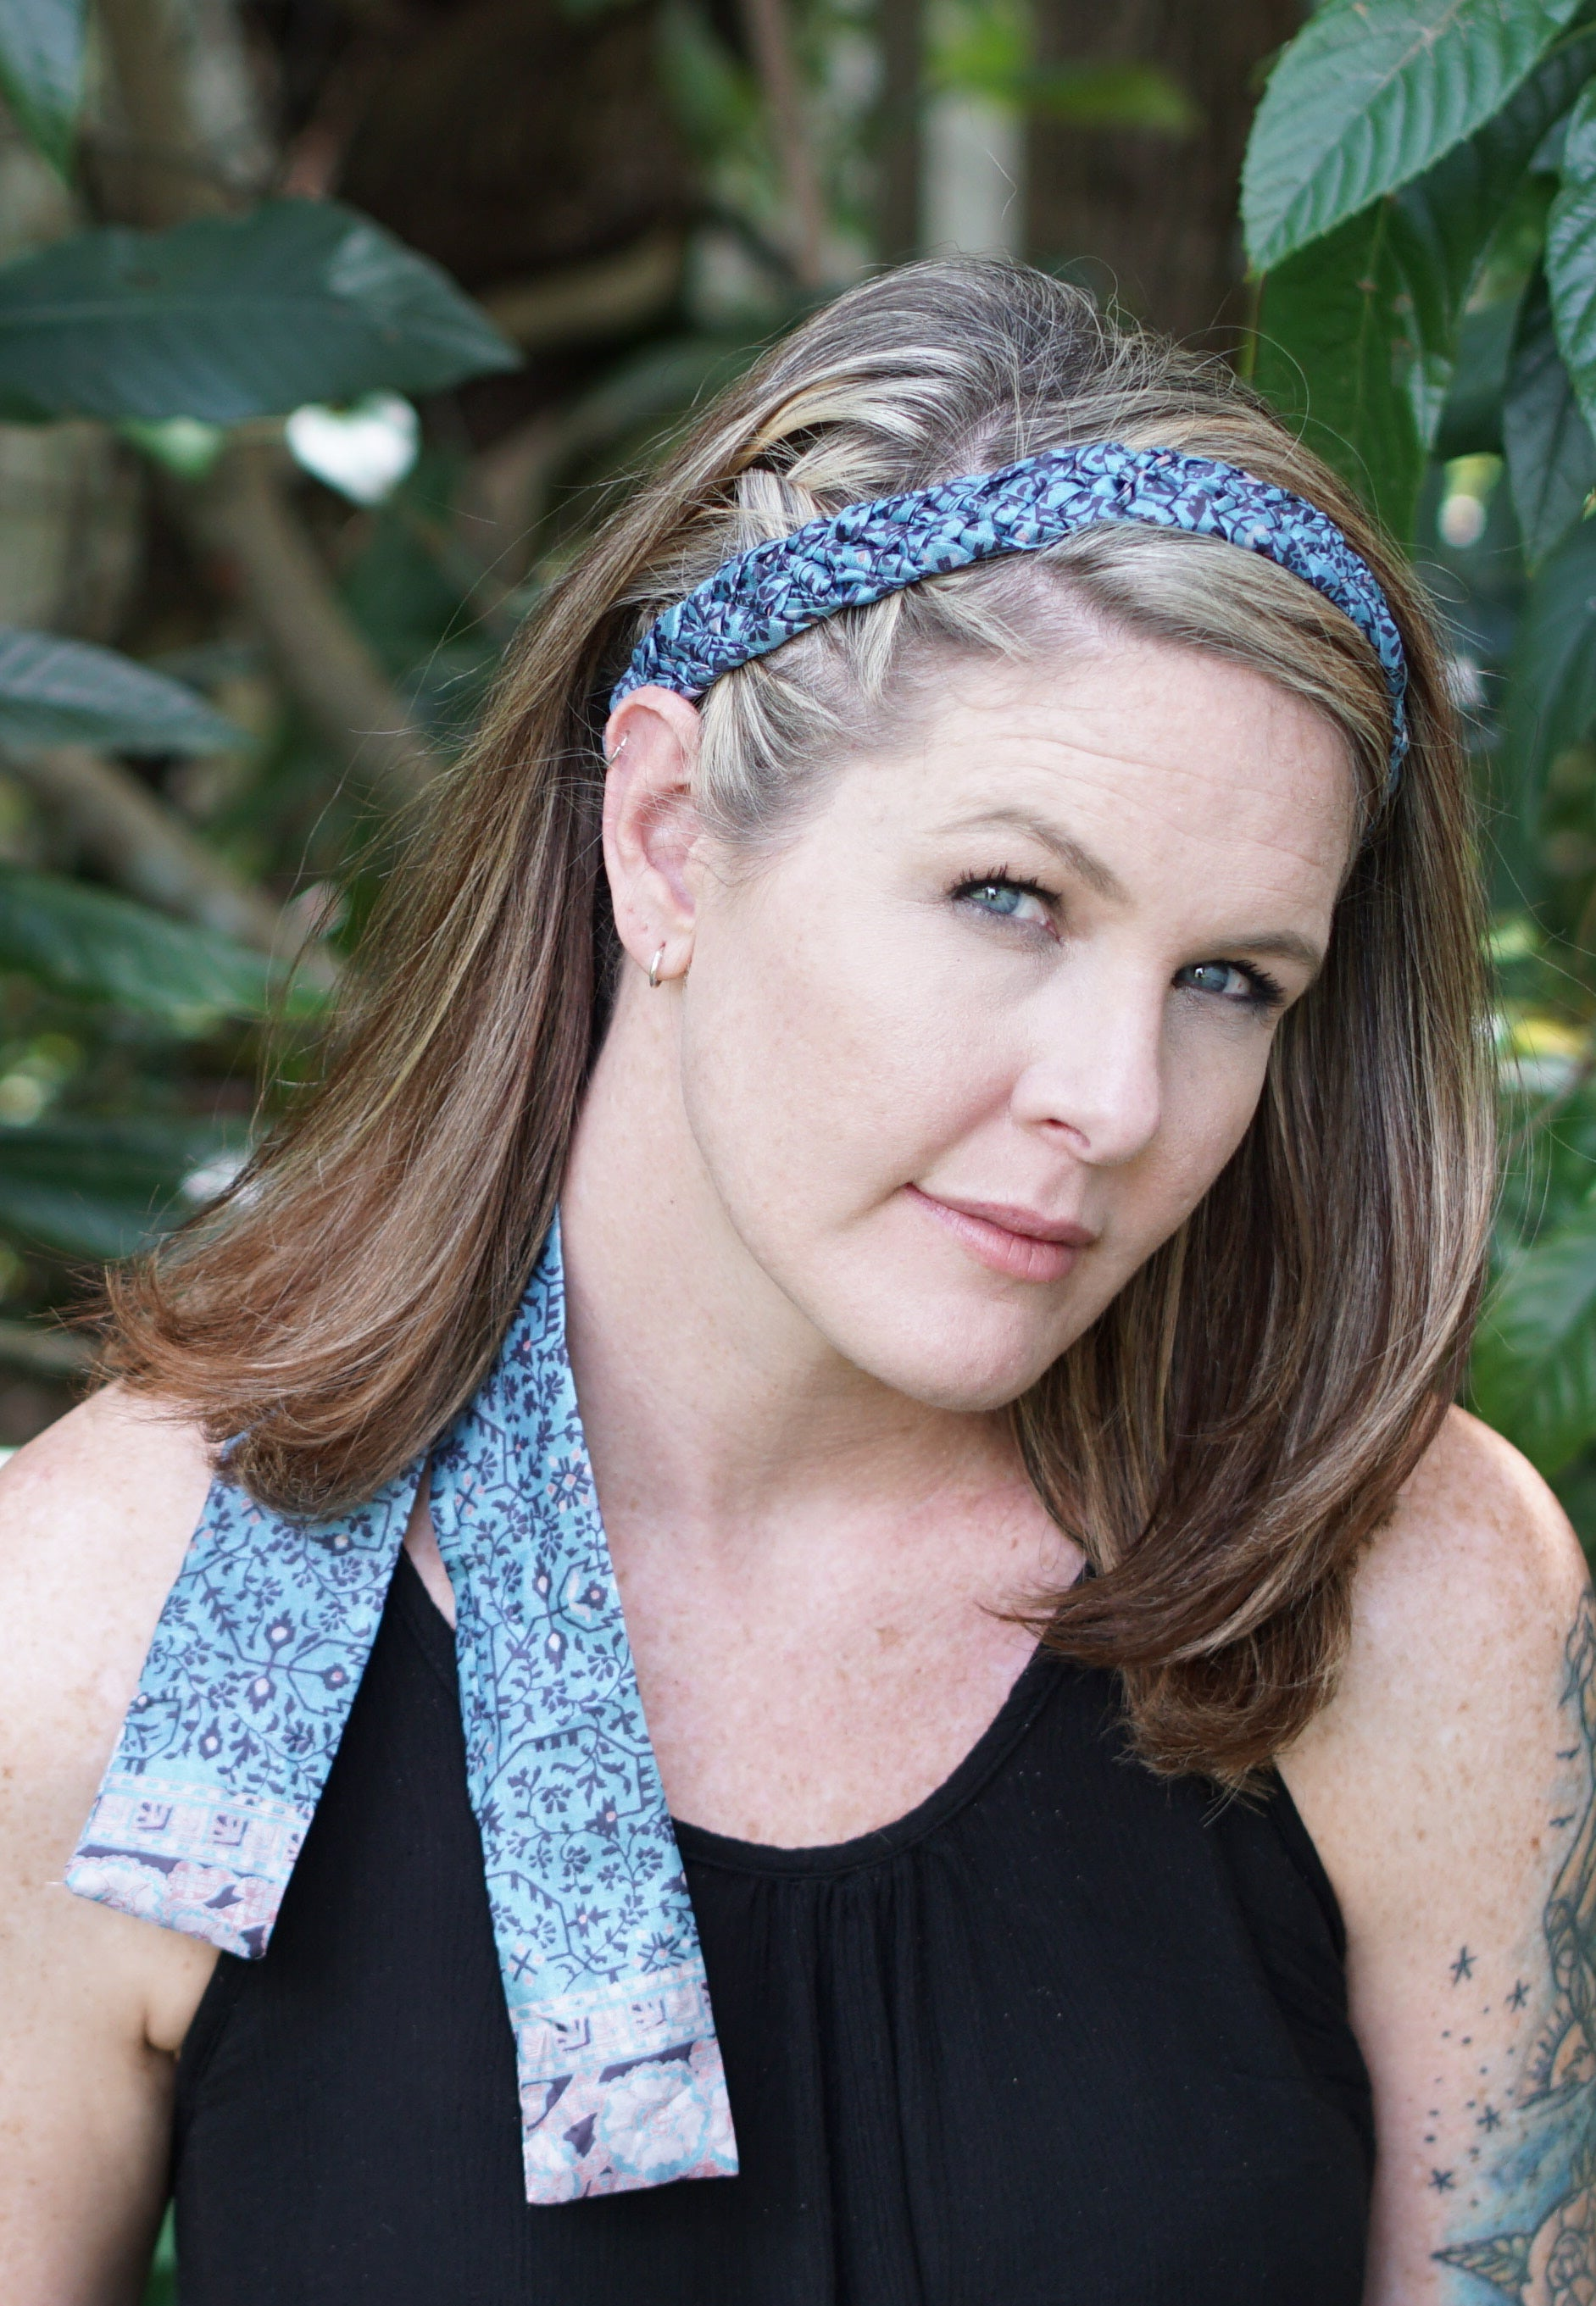 pale blue braided headband made from silk sari fabric in India